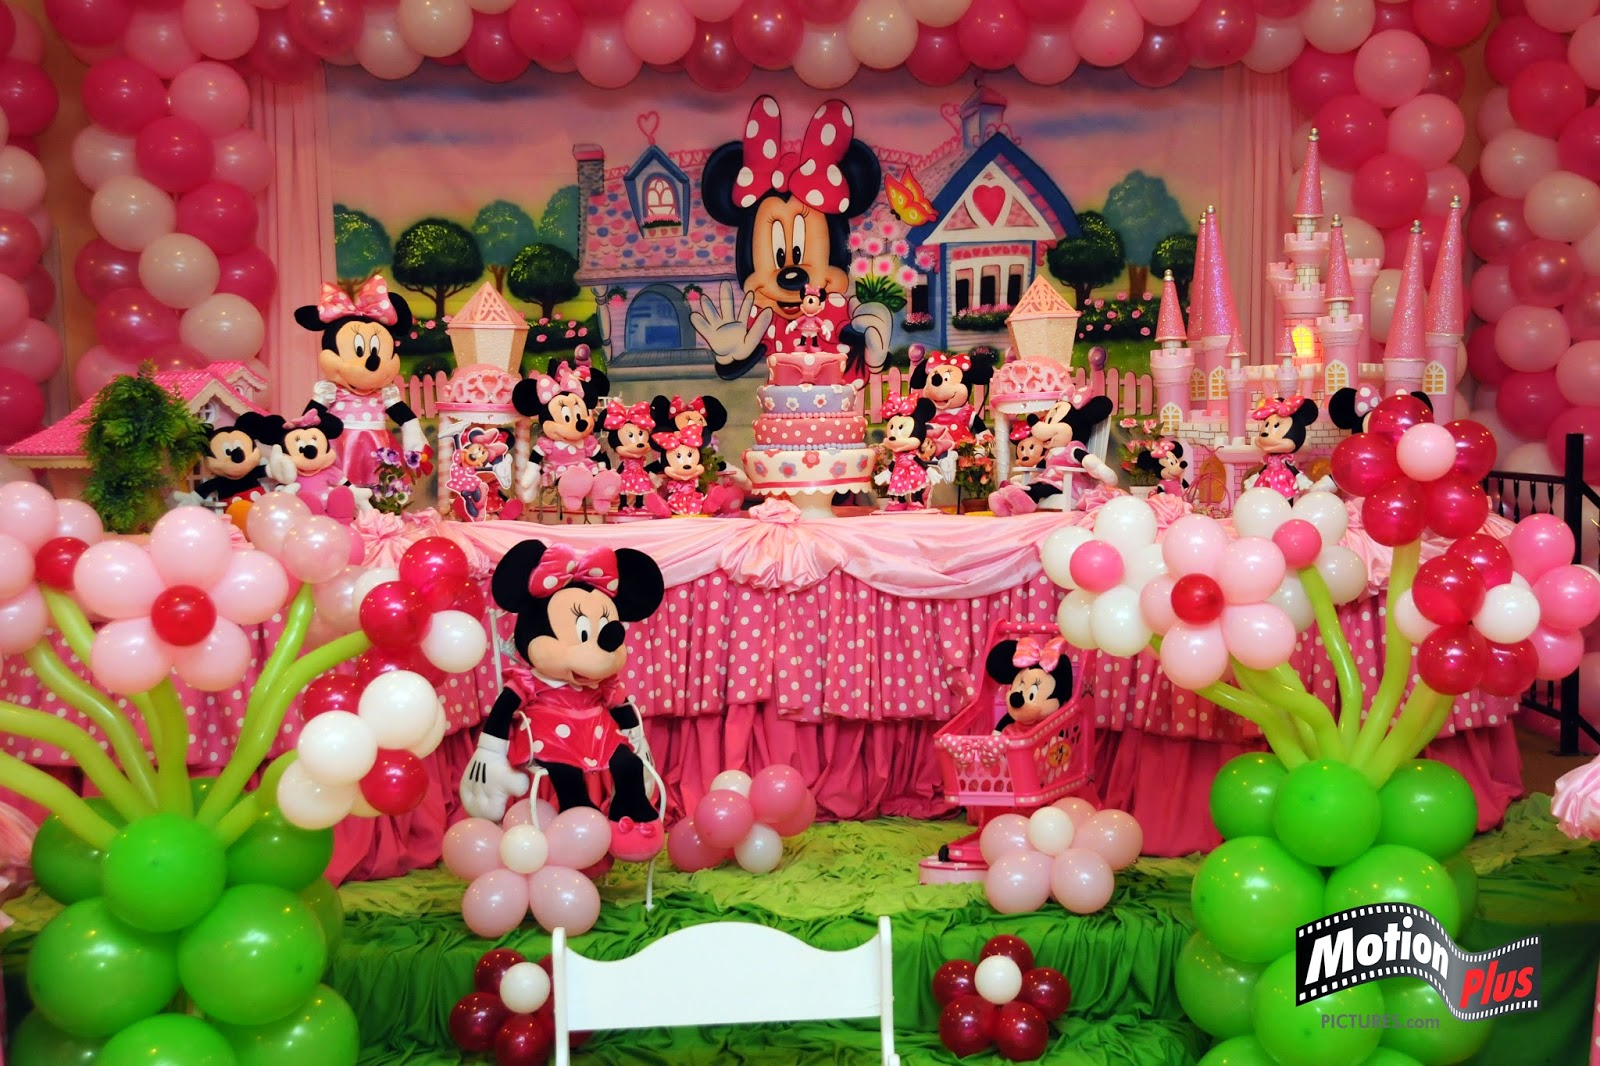 Julia_1st_b-day-_Minnie_Themed_Party_ideas_Motion_Plus_Pictures69939.jpg